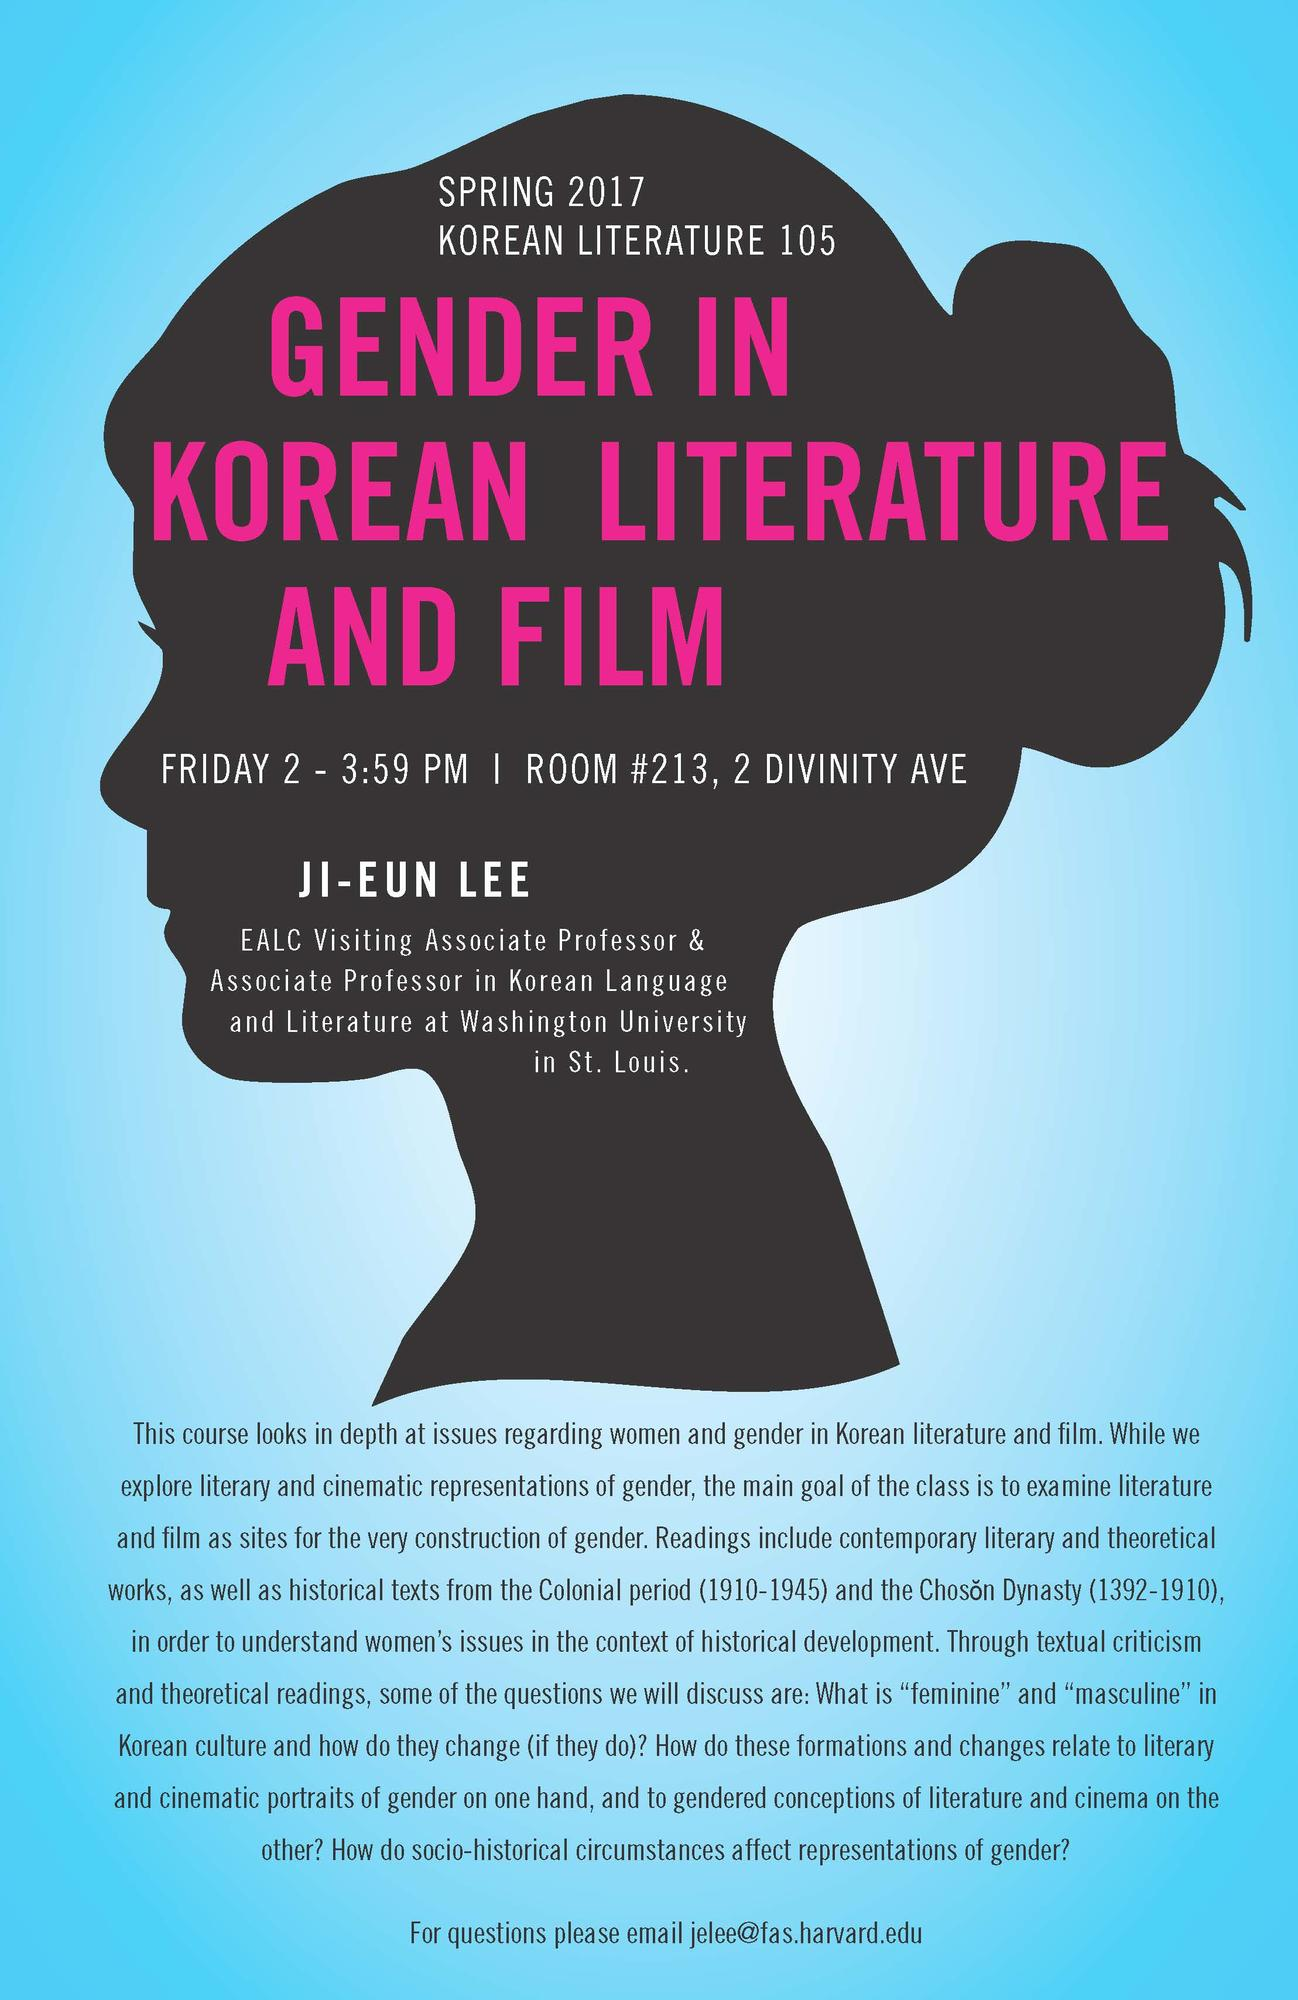 Gender in Korean Lit course poster